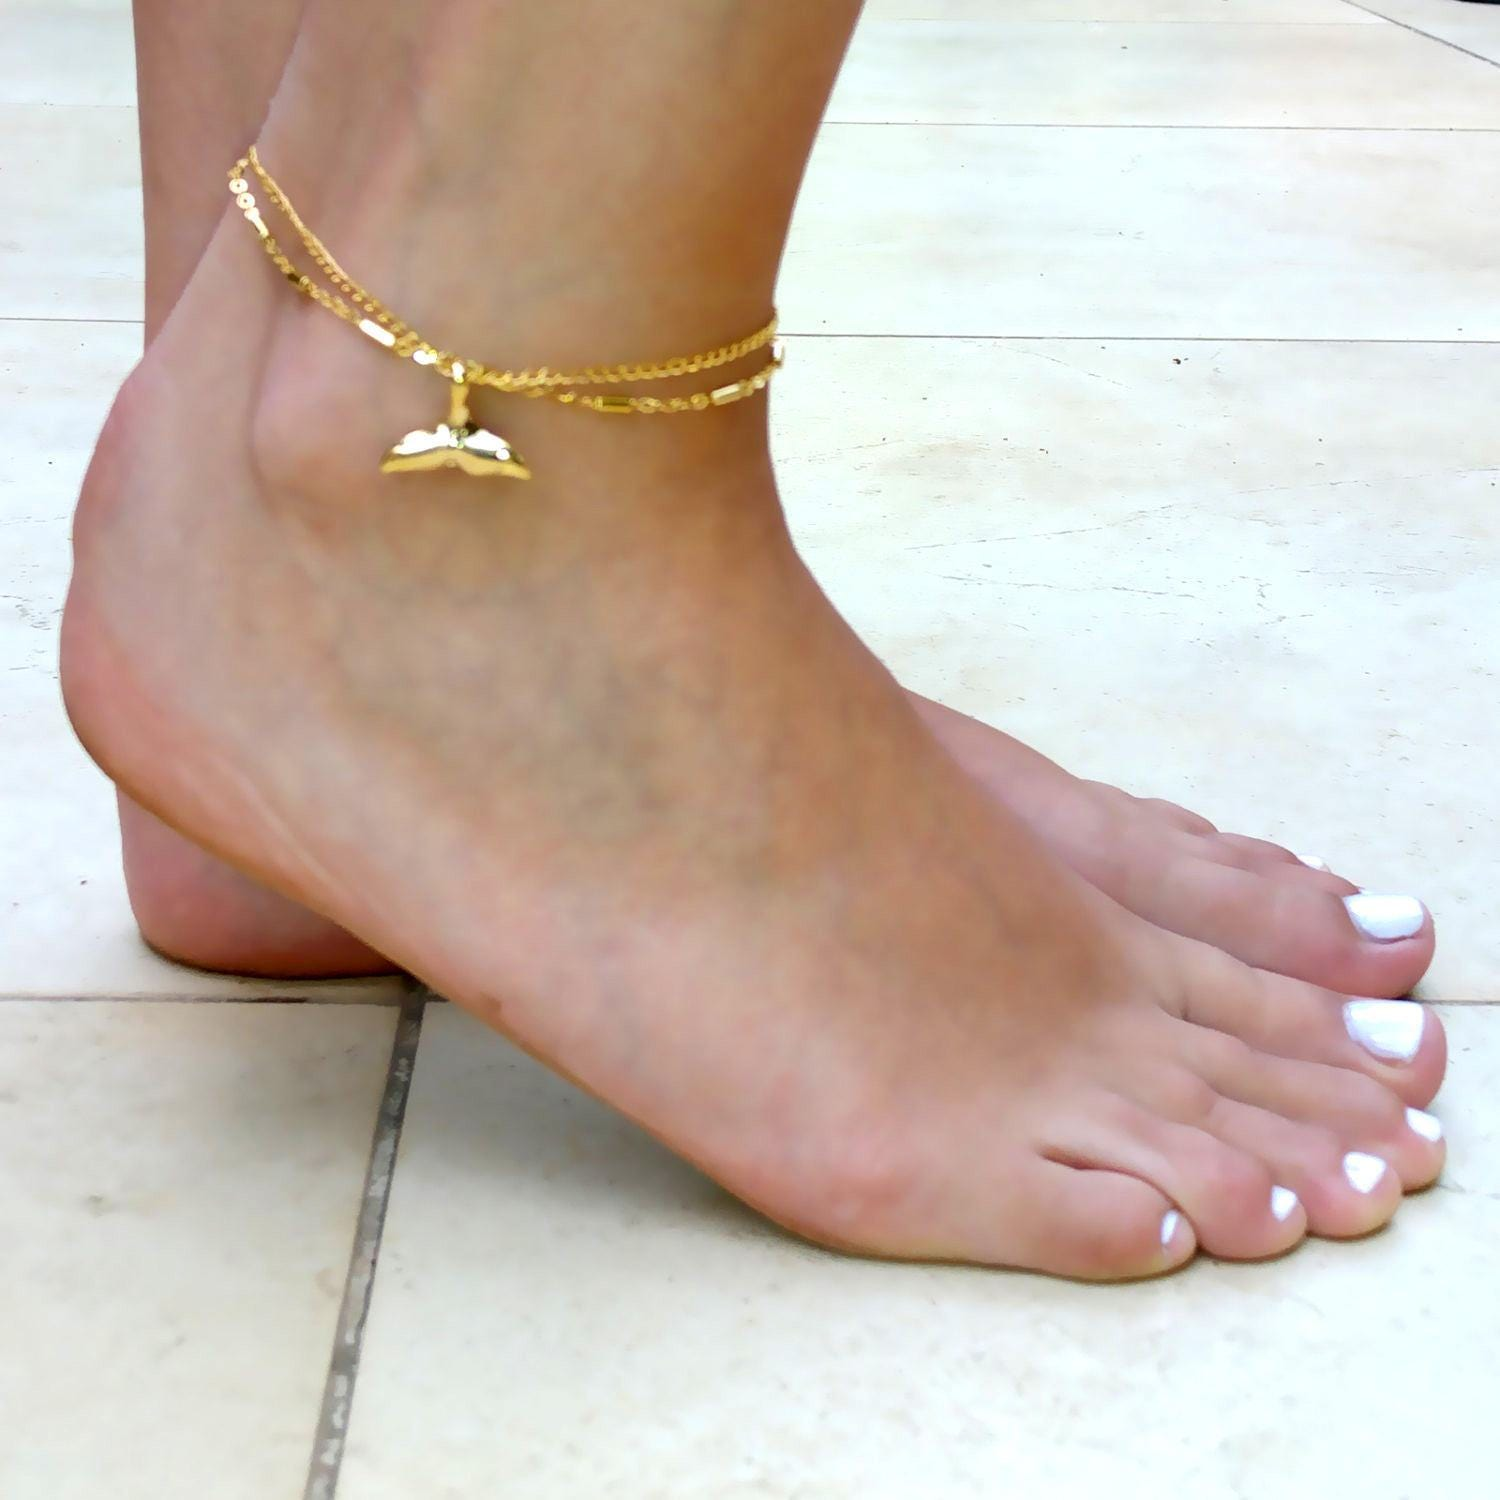 beach constellations ladies anklet hollow sandals bracelet stainless product summer rose gold ankle chain steel barefoot